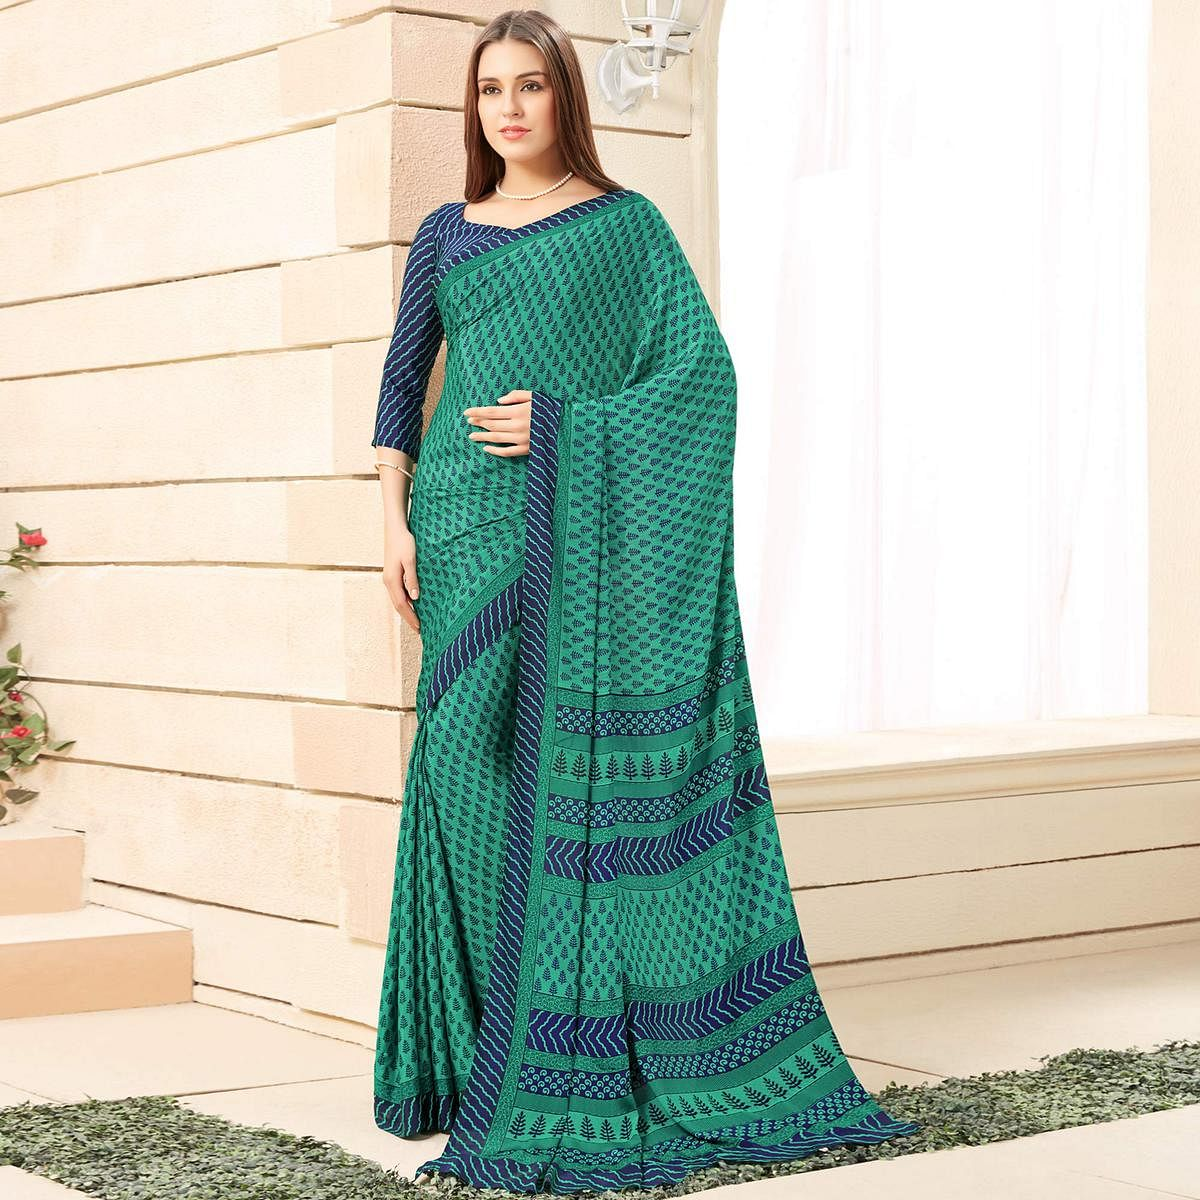 Lovely Turquoise Green Colored Casual Printed Crepe Saree